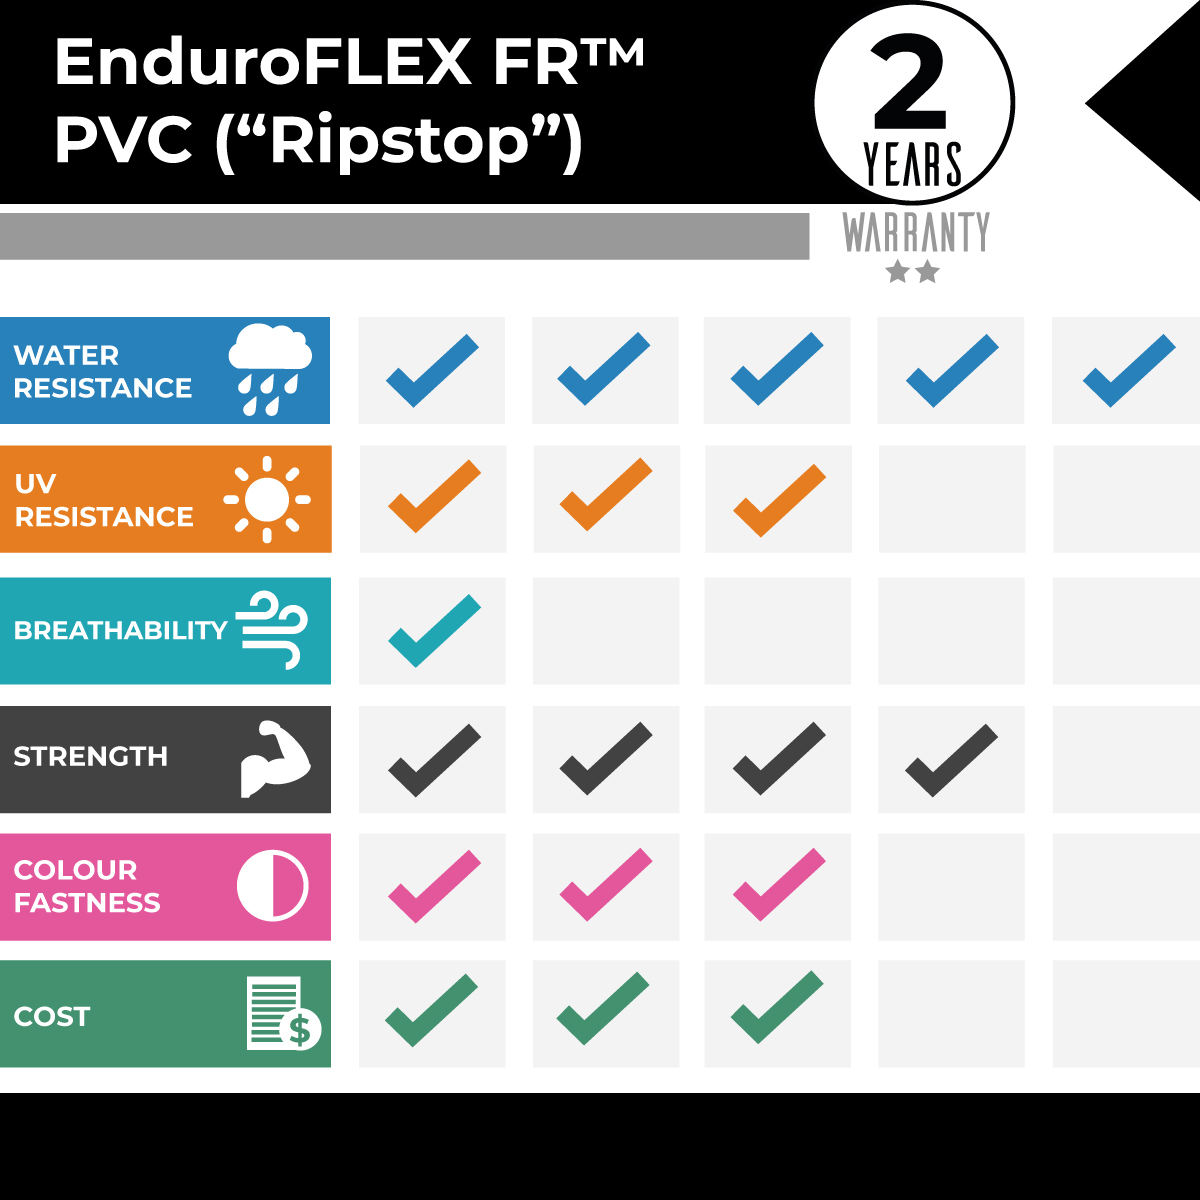 EnduroFLEX Ripstop PVC Comparison Graph